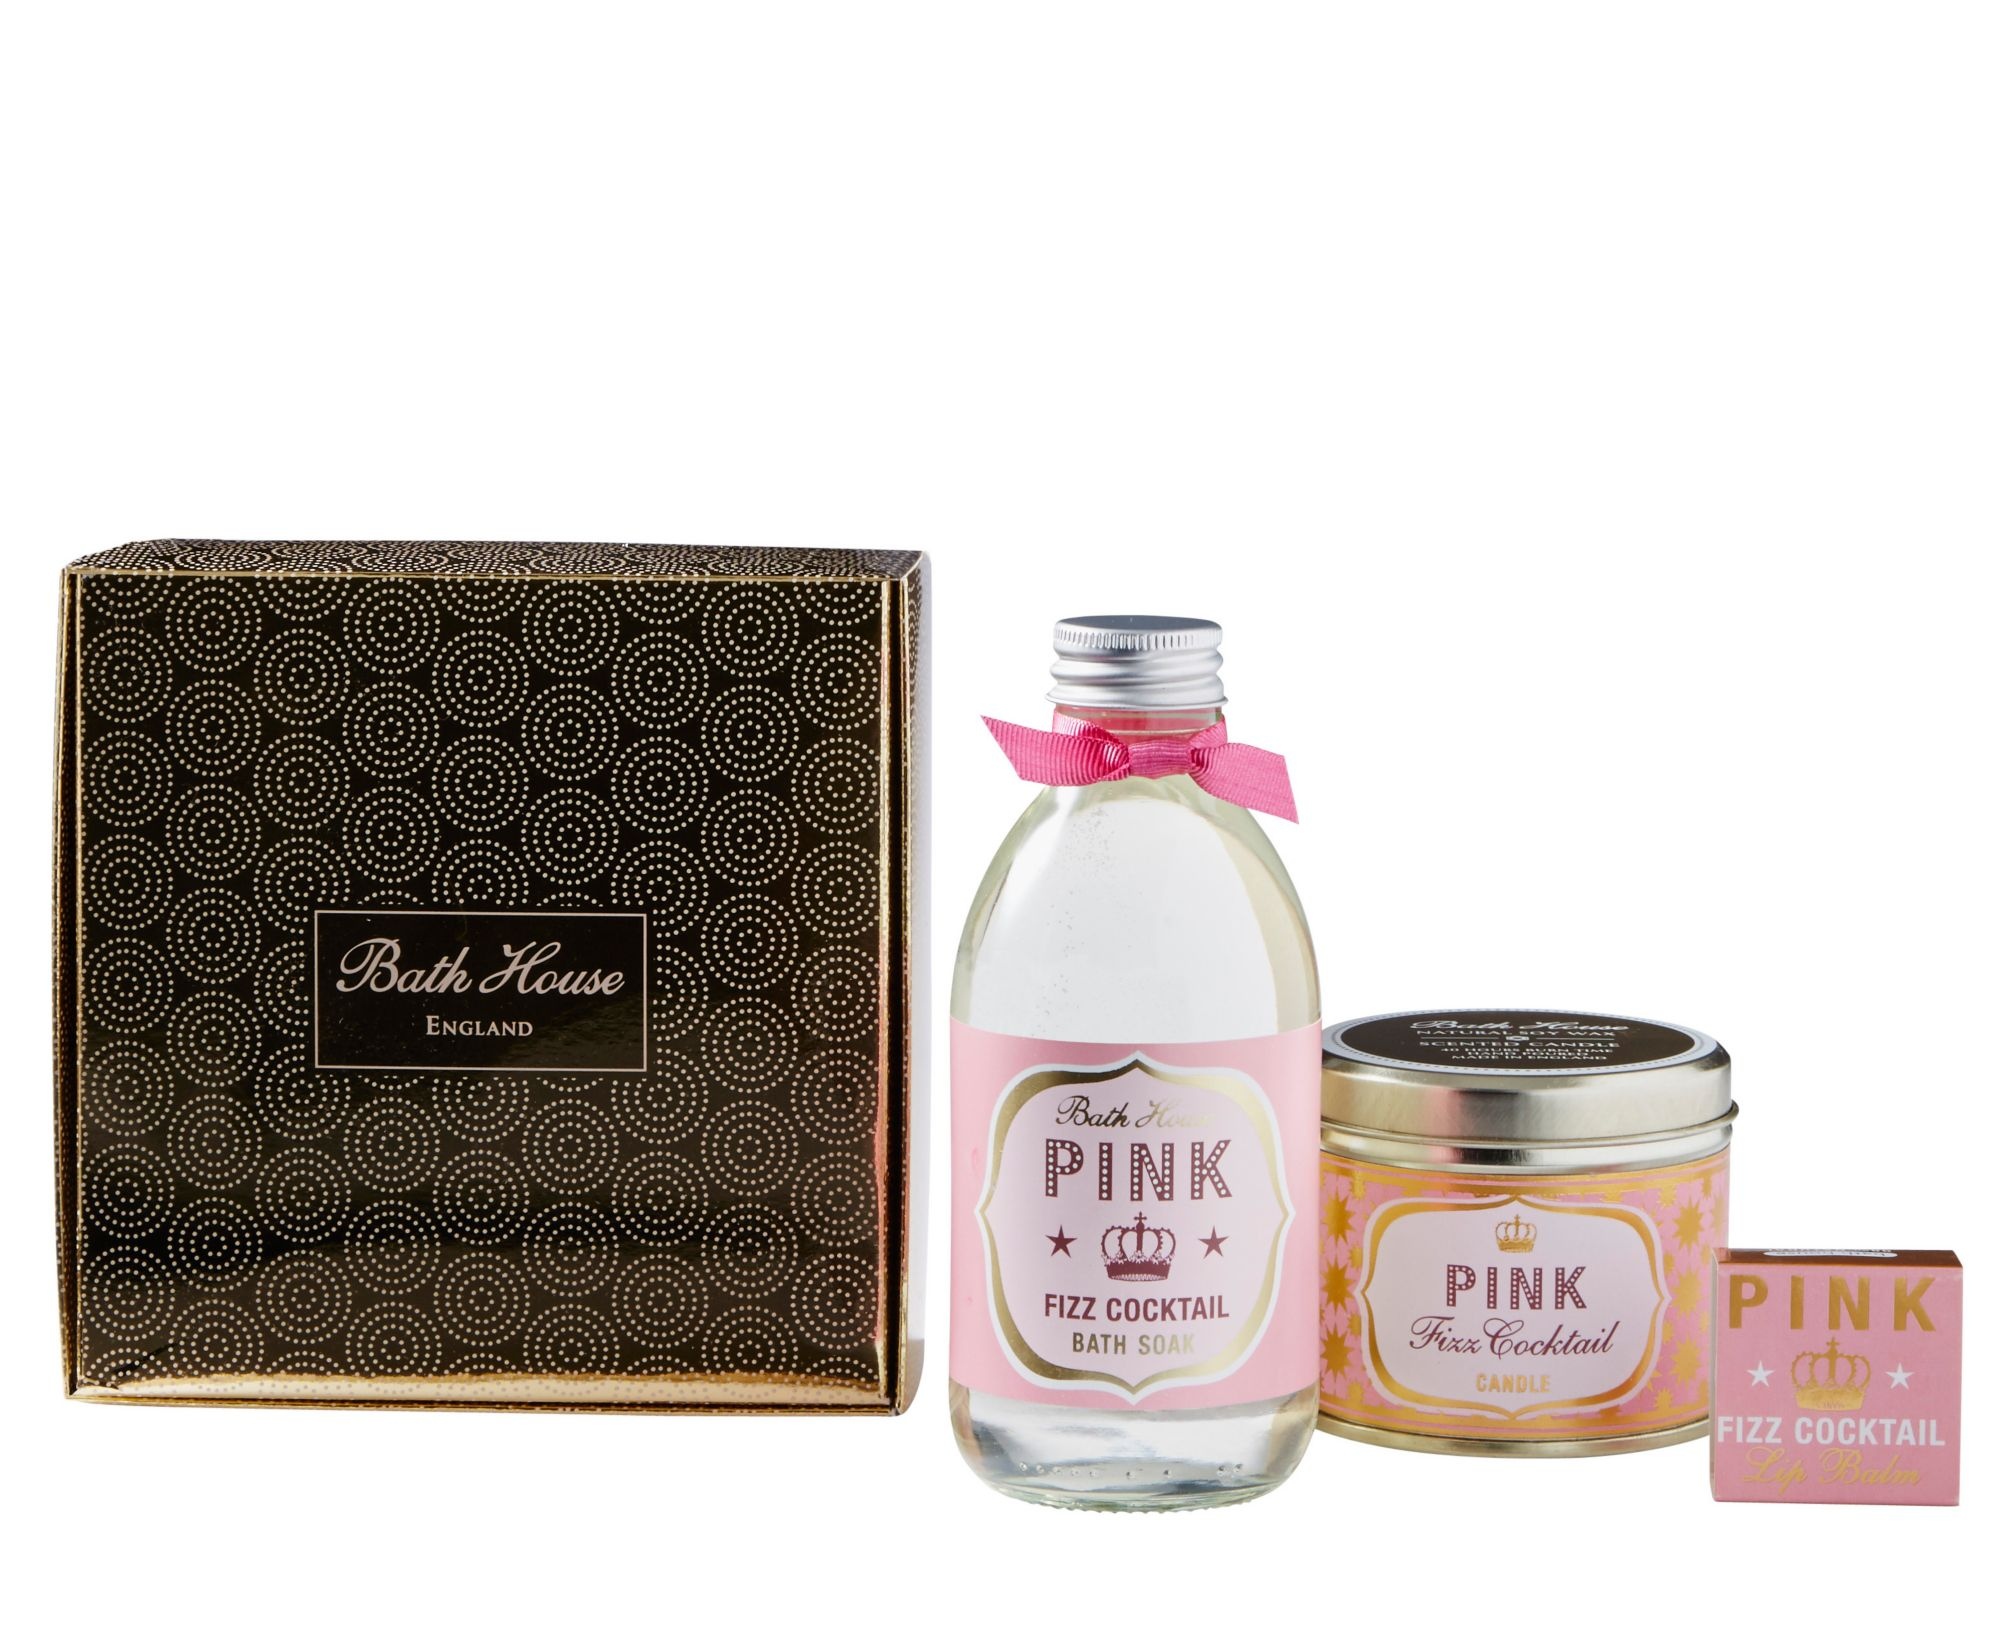 Image of Bath House Pink Fizz Cocktail Gift Box